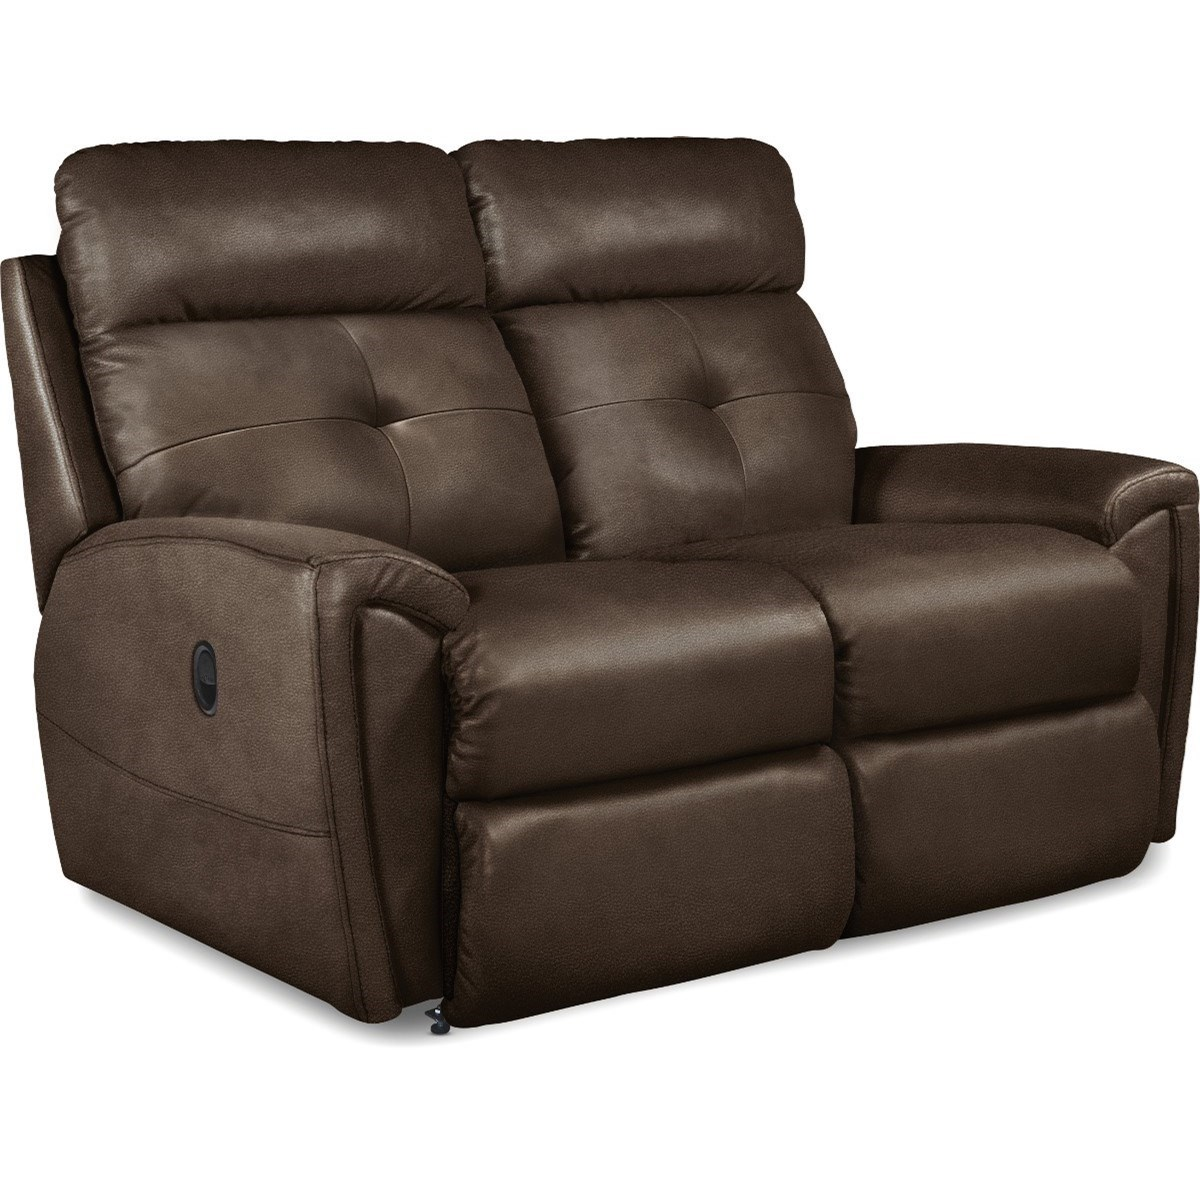 Contemporary Power Reclining Loveseat with USB Charging Ports and Power Tilt Headrests